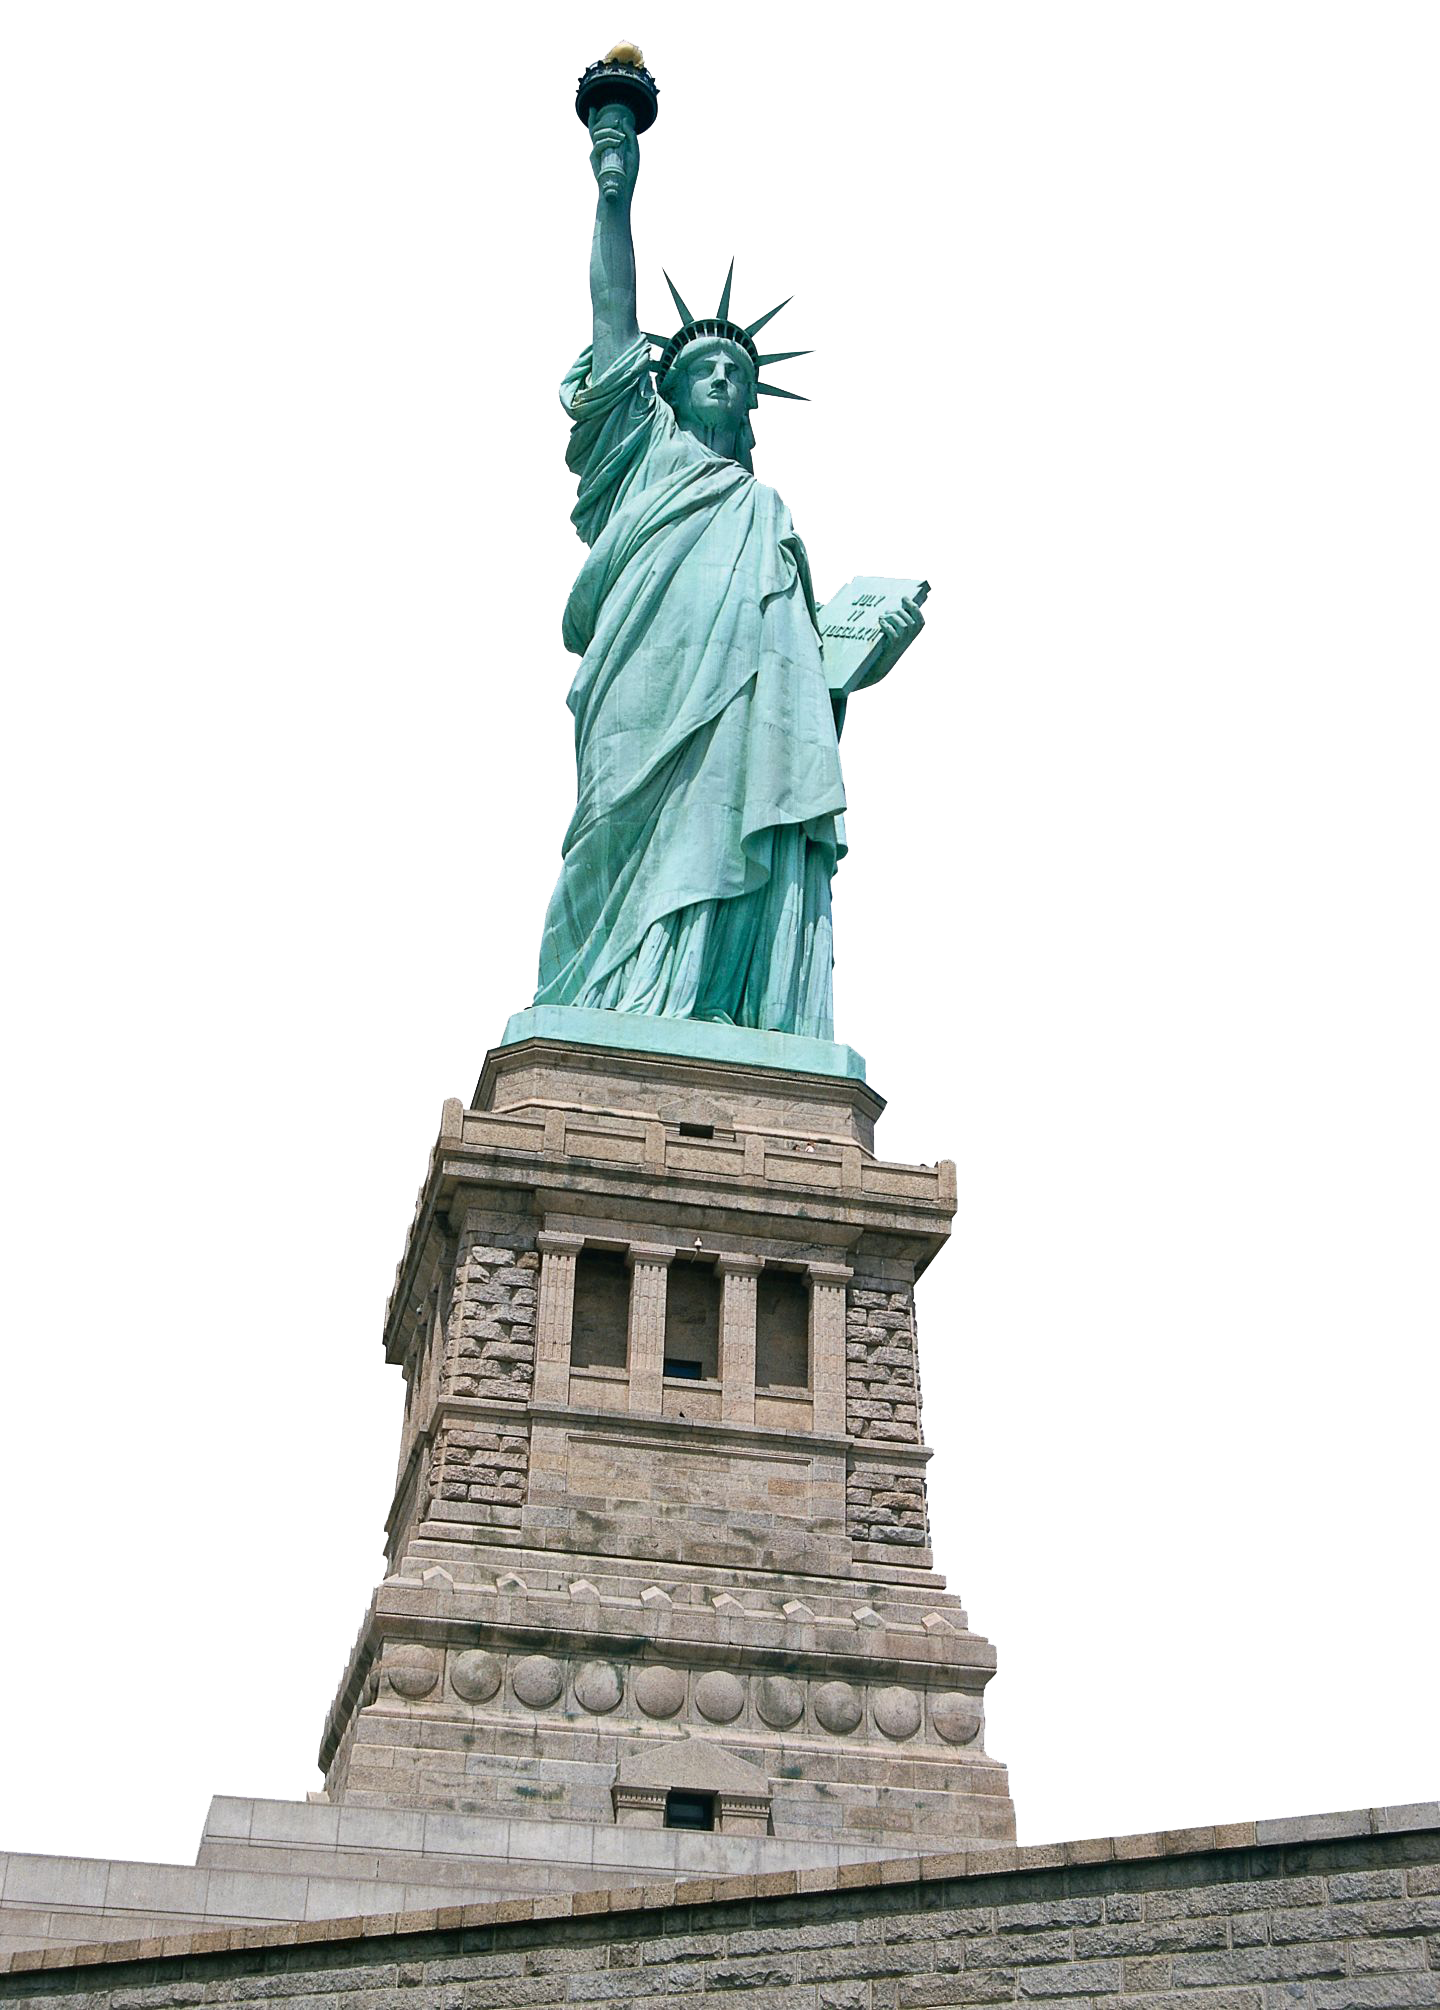 download statue of liberty png image hq png image freepngimg hound dog clip art black white Hound Dog Silhouette